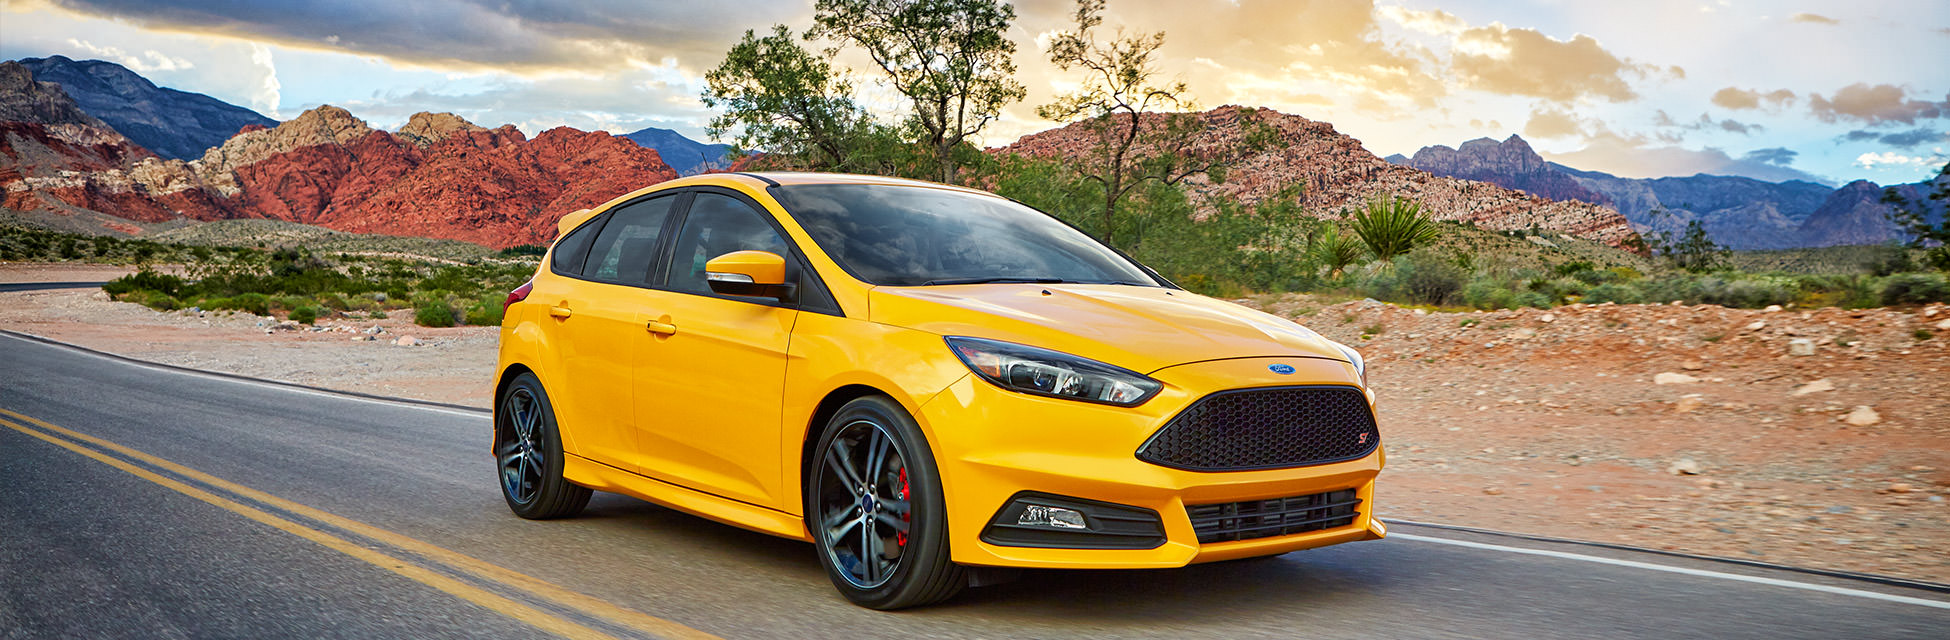 New 2016 Ford Focus Starting at $158/month